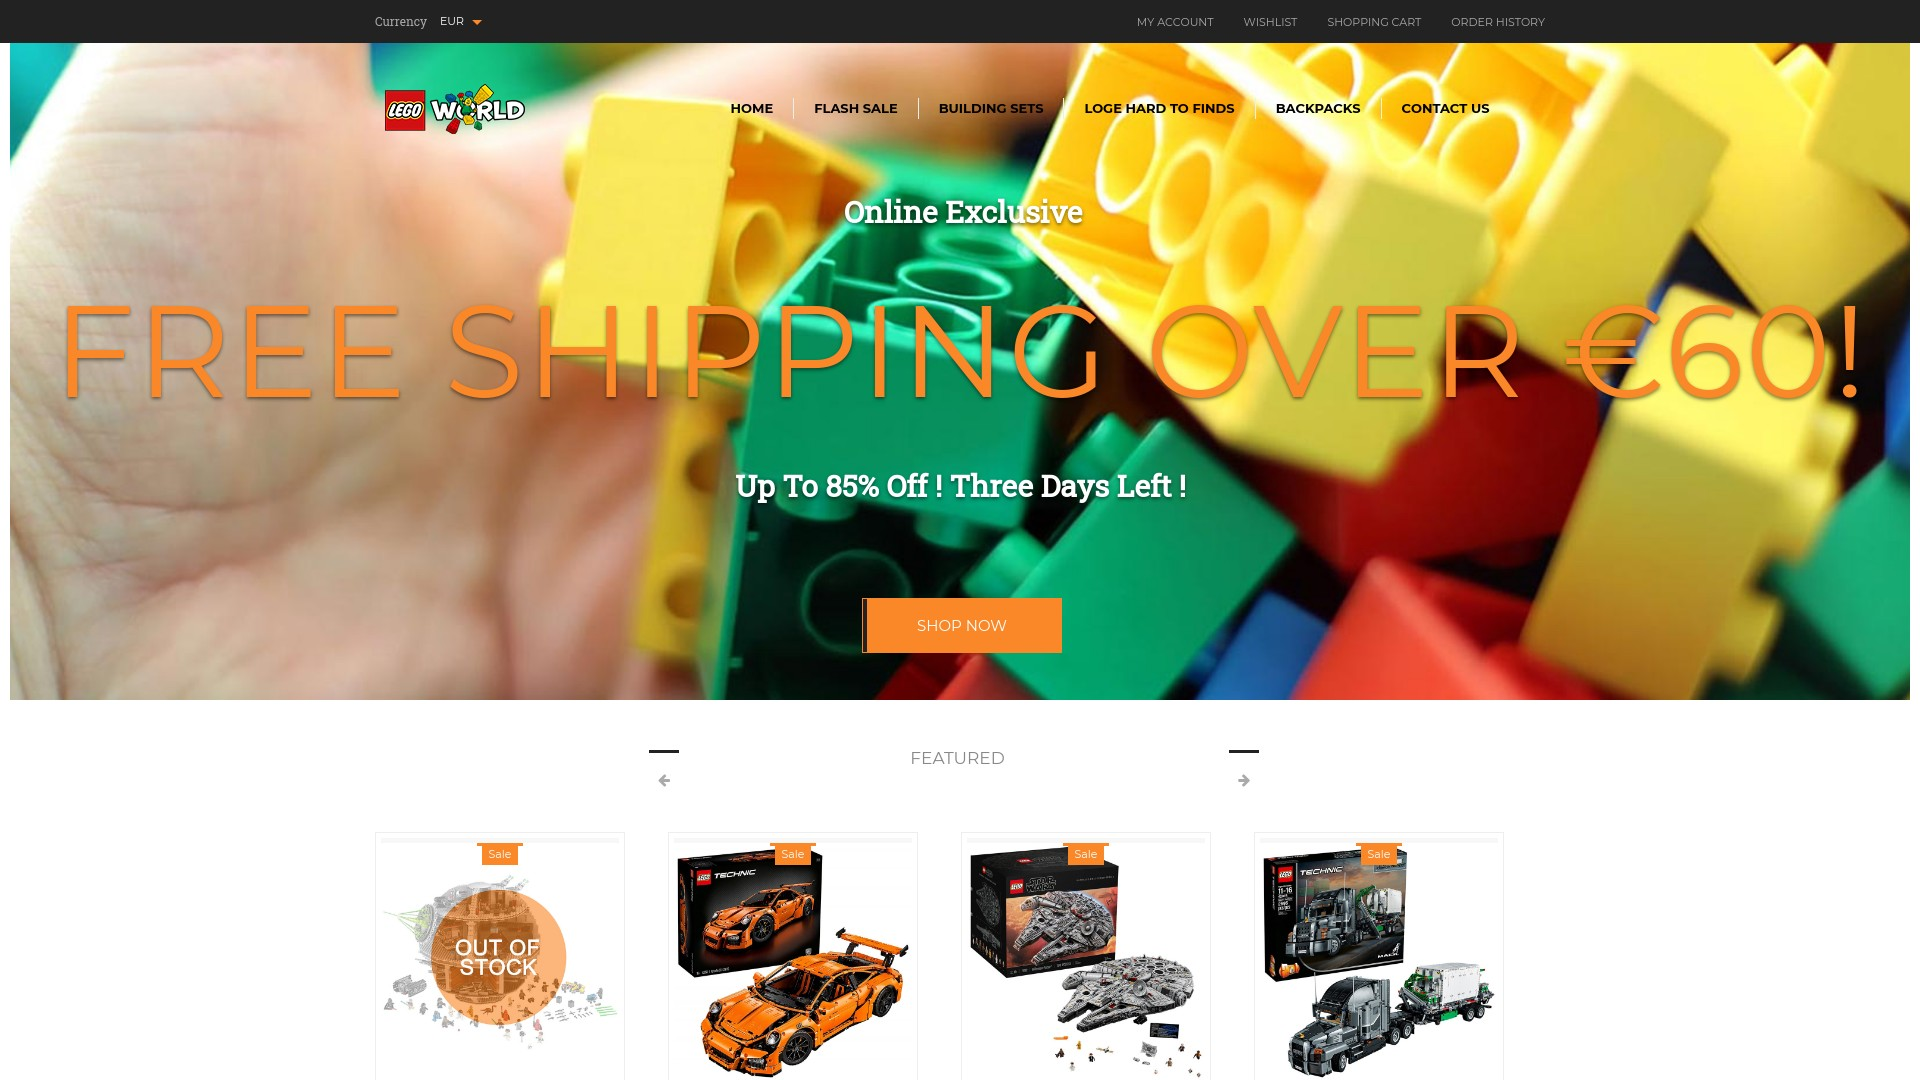 Pol.toyion.com is a Scam and Fake Lego Online Store